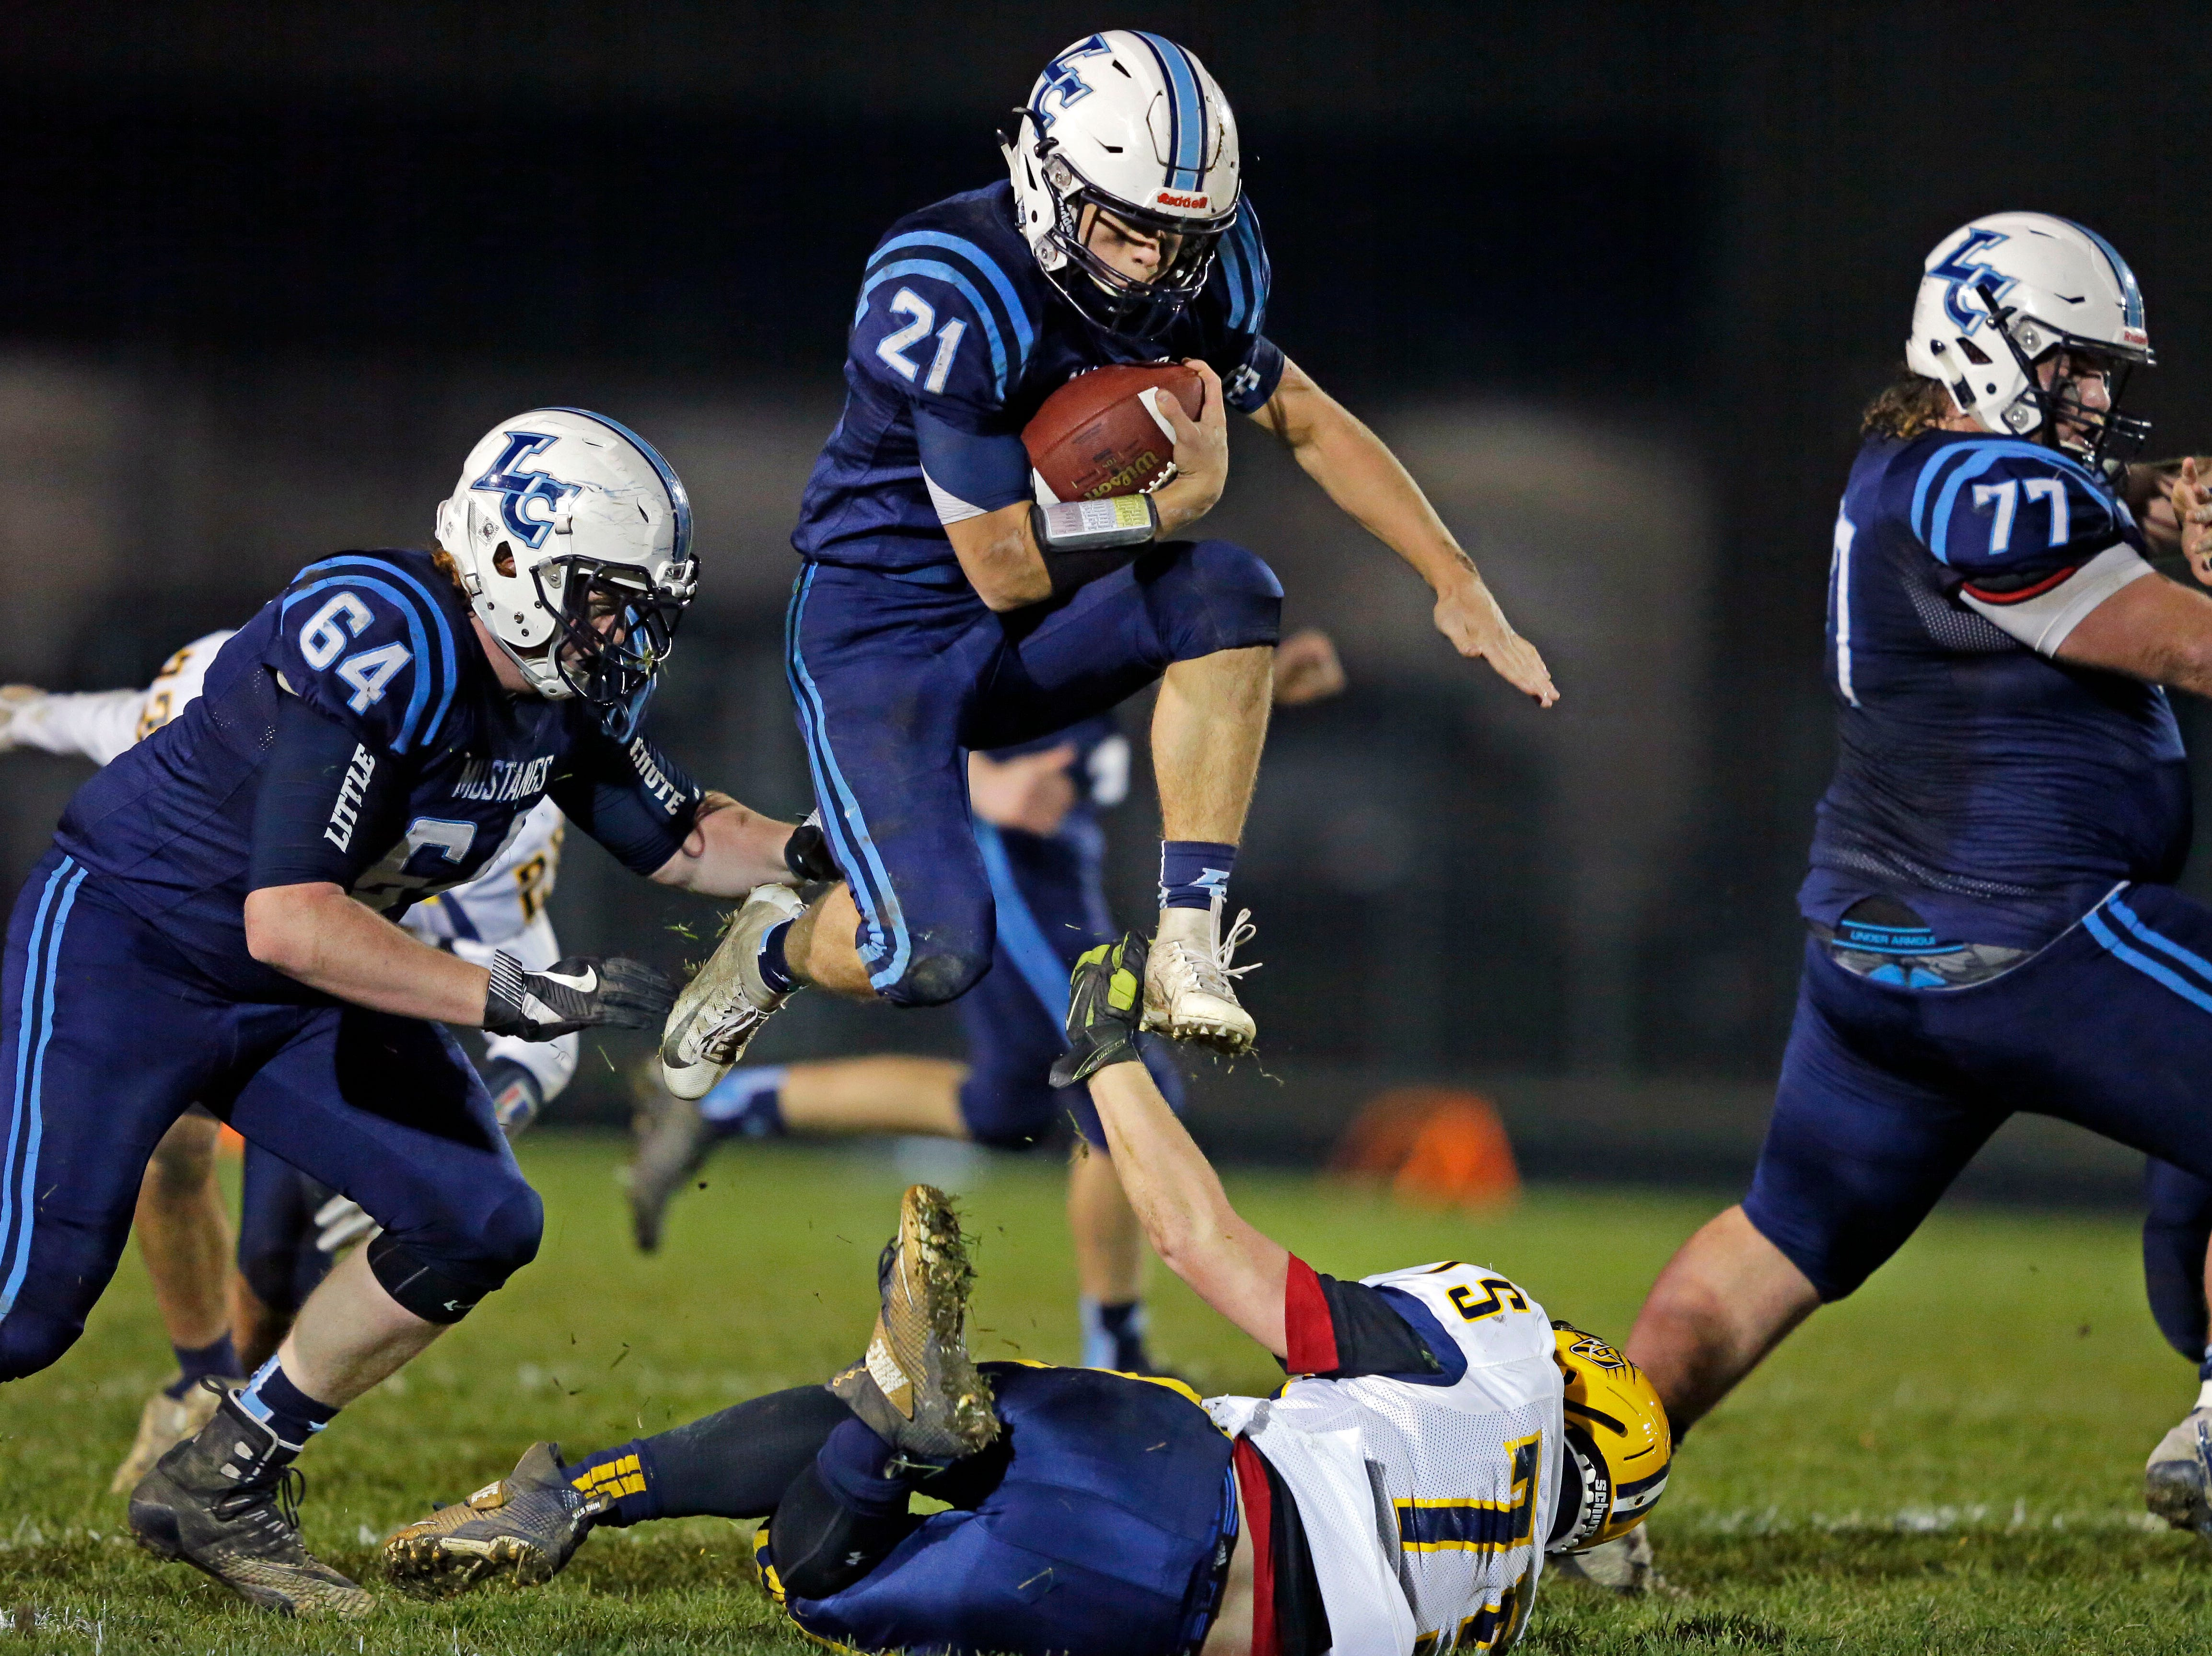 Isaac Van Deurzen of Little Chute leaps over Benjamin Savage of Chilton in a WIAA Division 4 second round football playoff game Friday, October 26, 2018, at Little Chute High School in Little Chute, Wis.Ron Page/USA TODAY NETWORK-Wisconsin